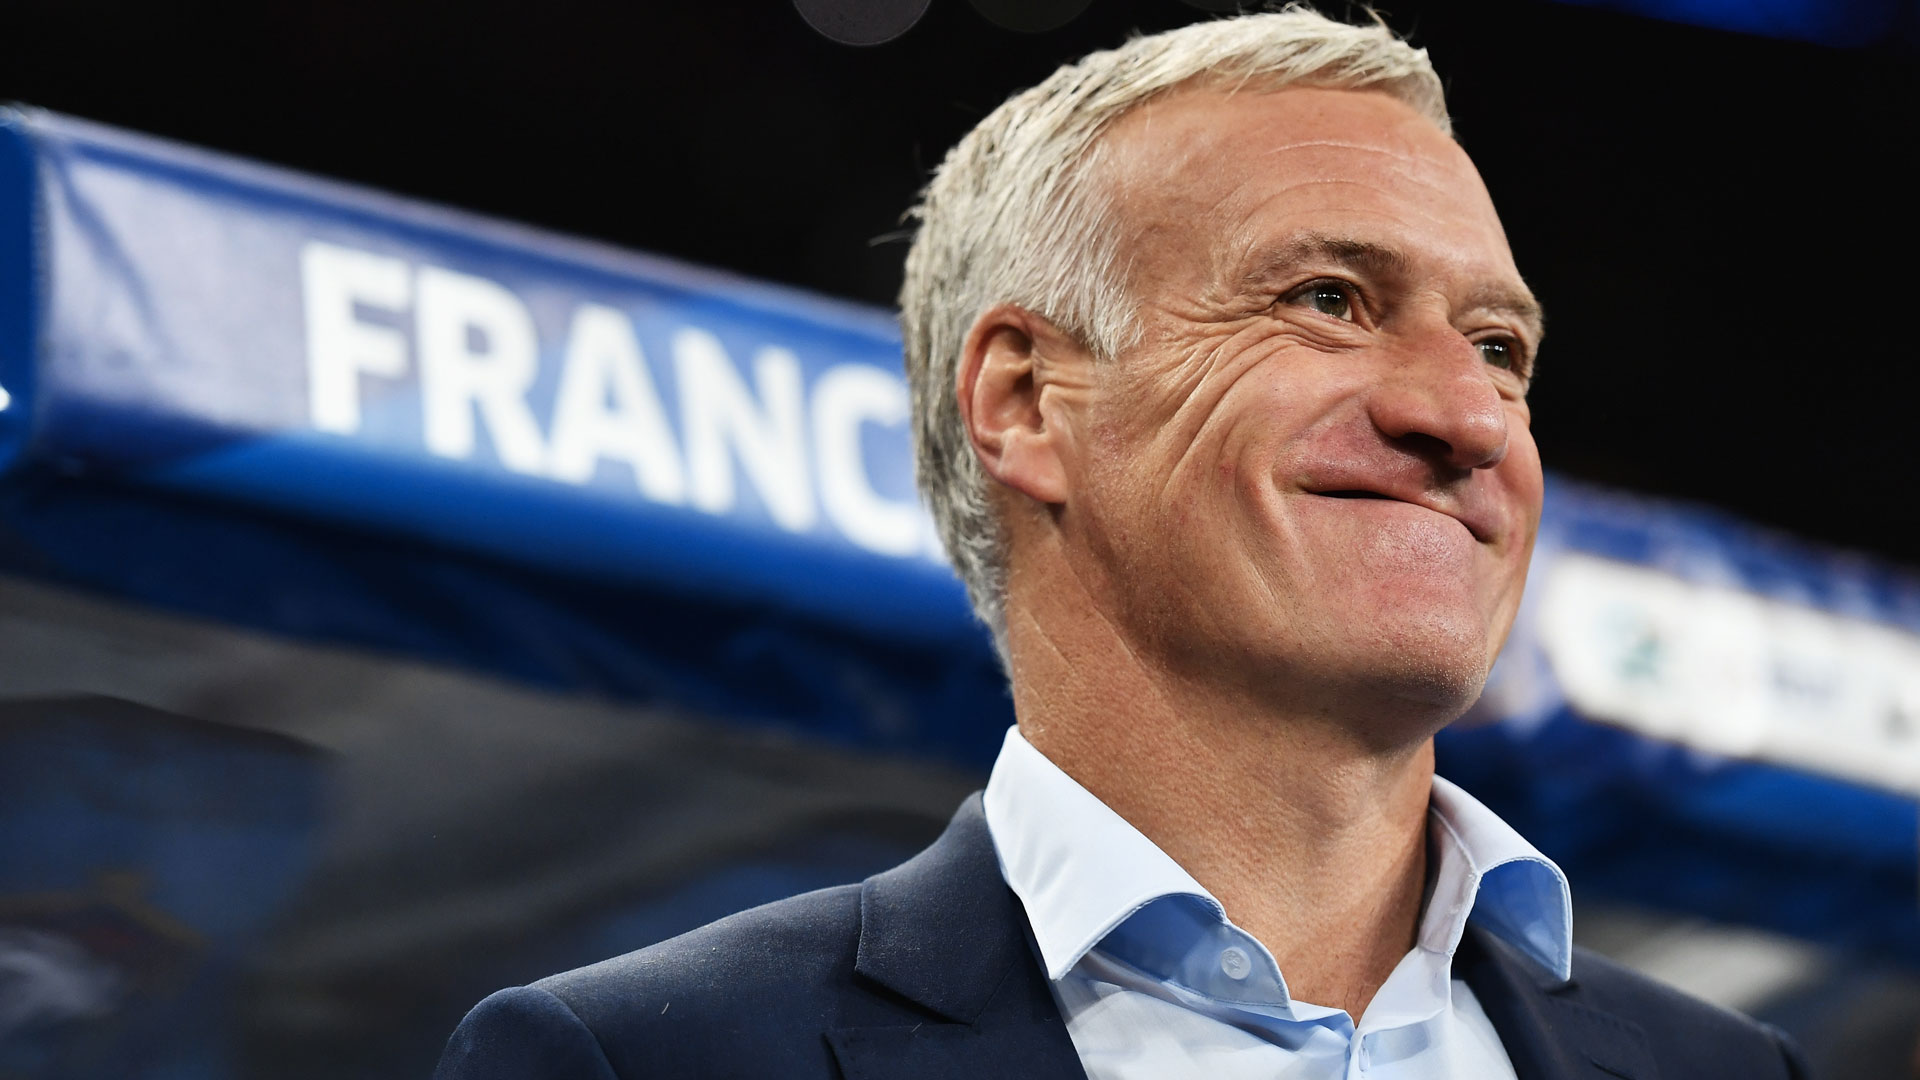 Deschamps extends France contract through to 2020